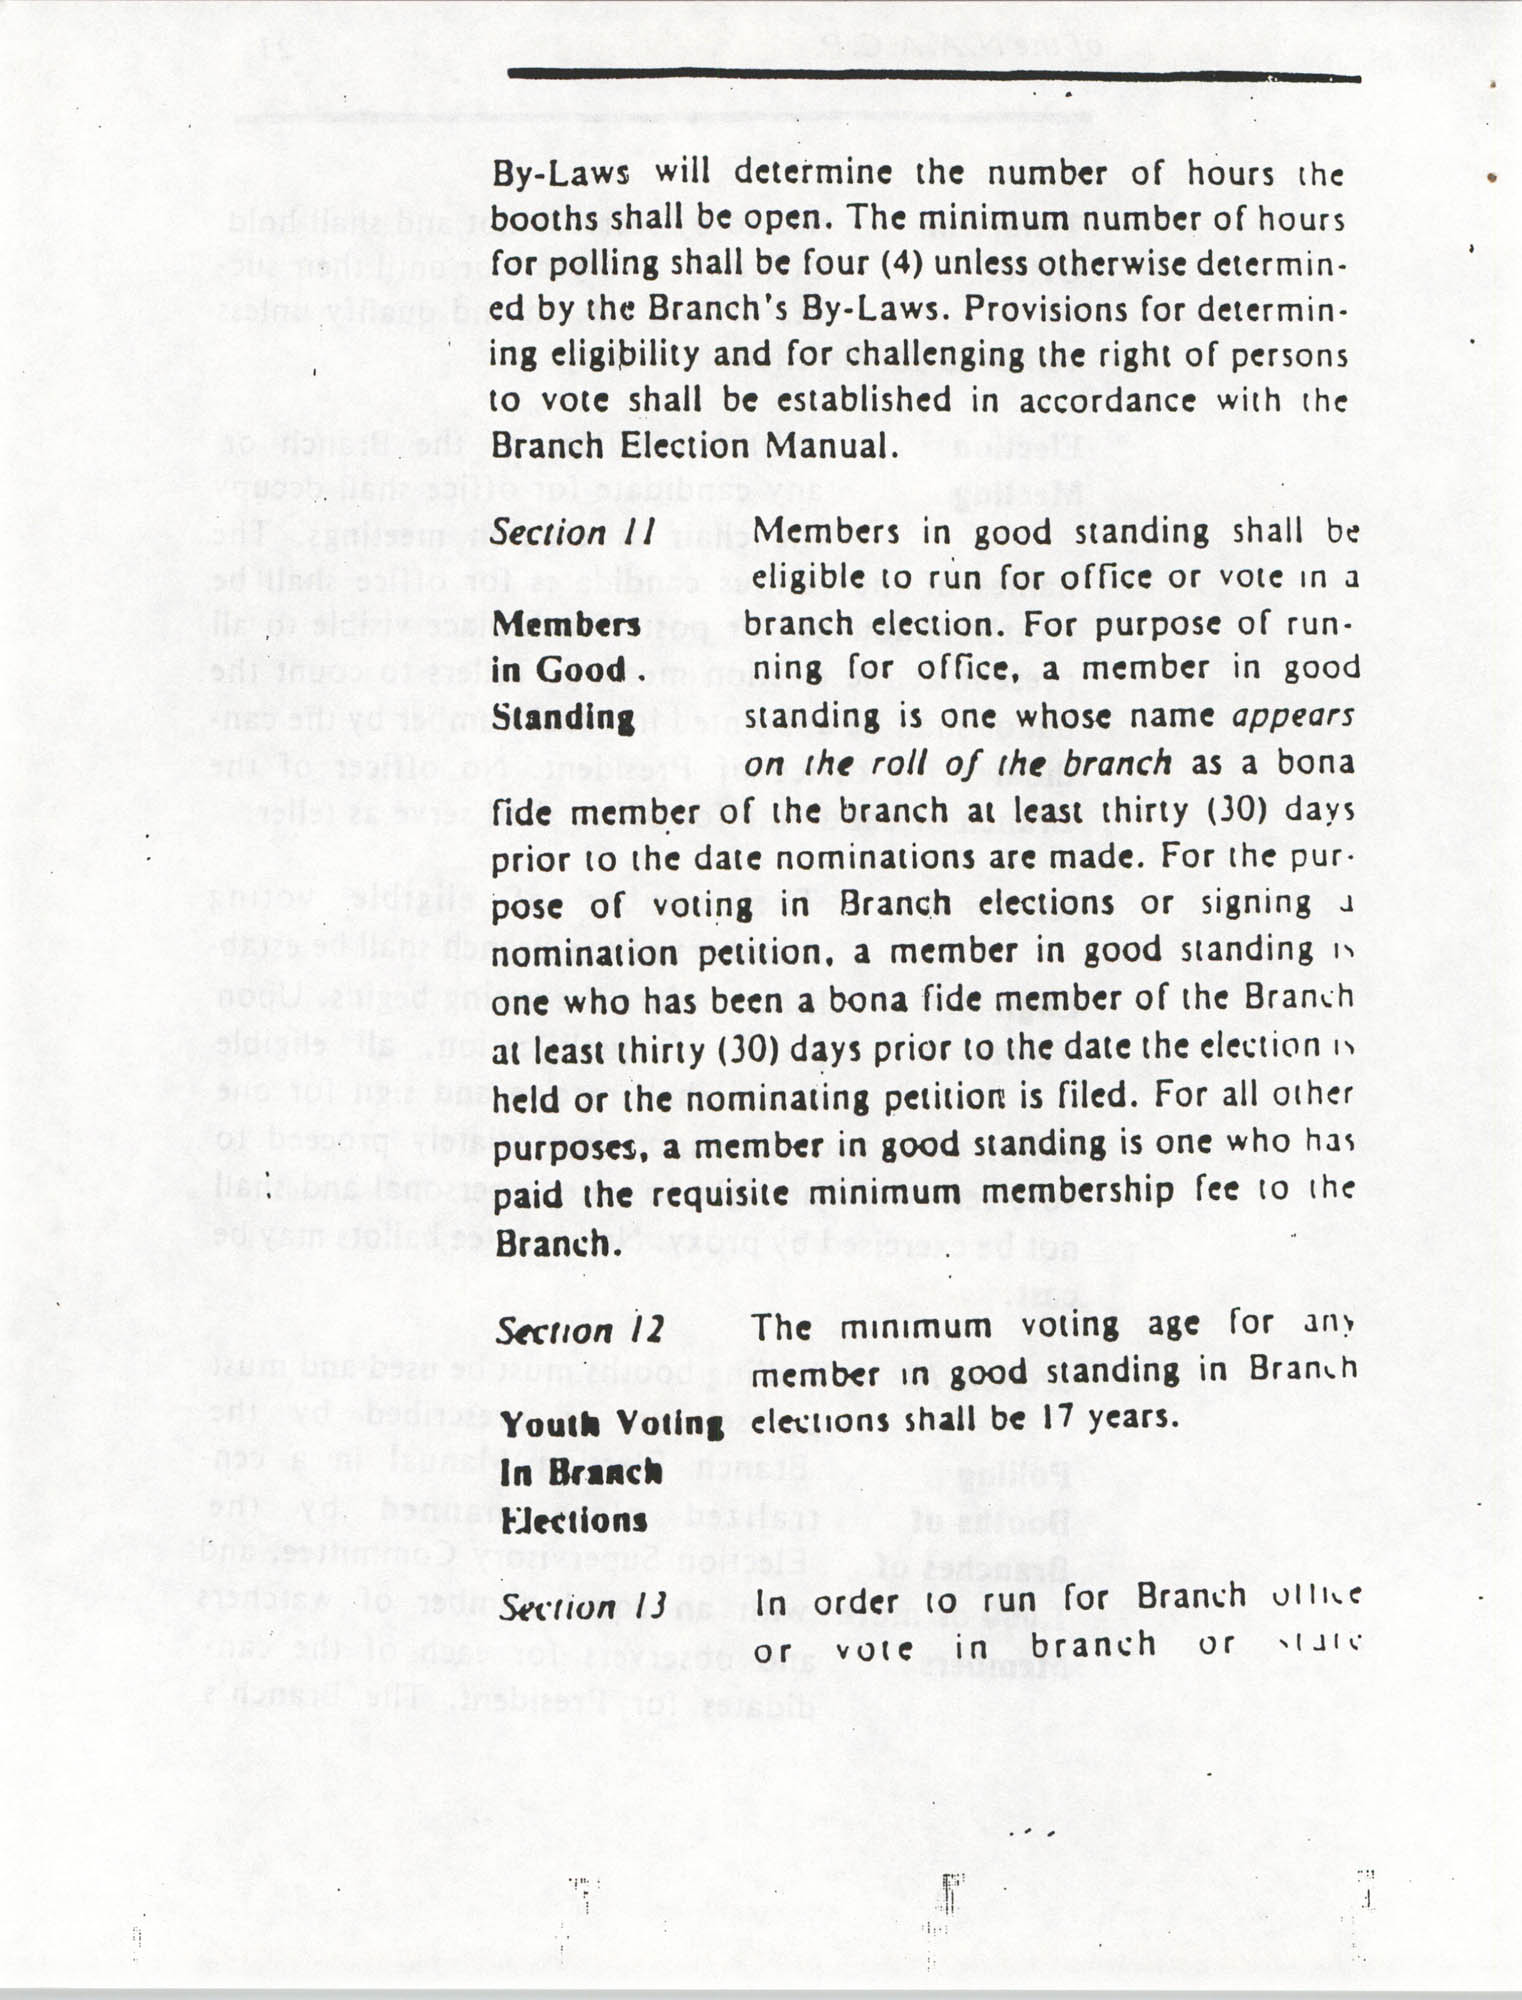 Constitution and By-Laws for Branches of the NAACP, March 1992, Page 24